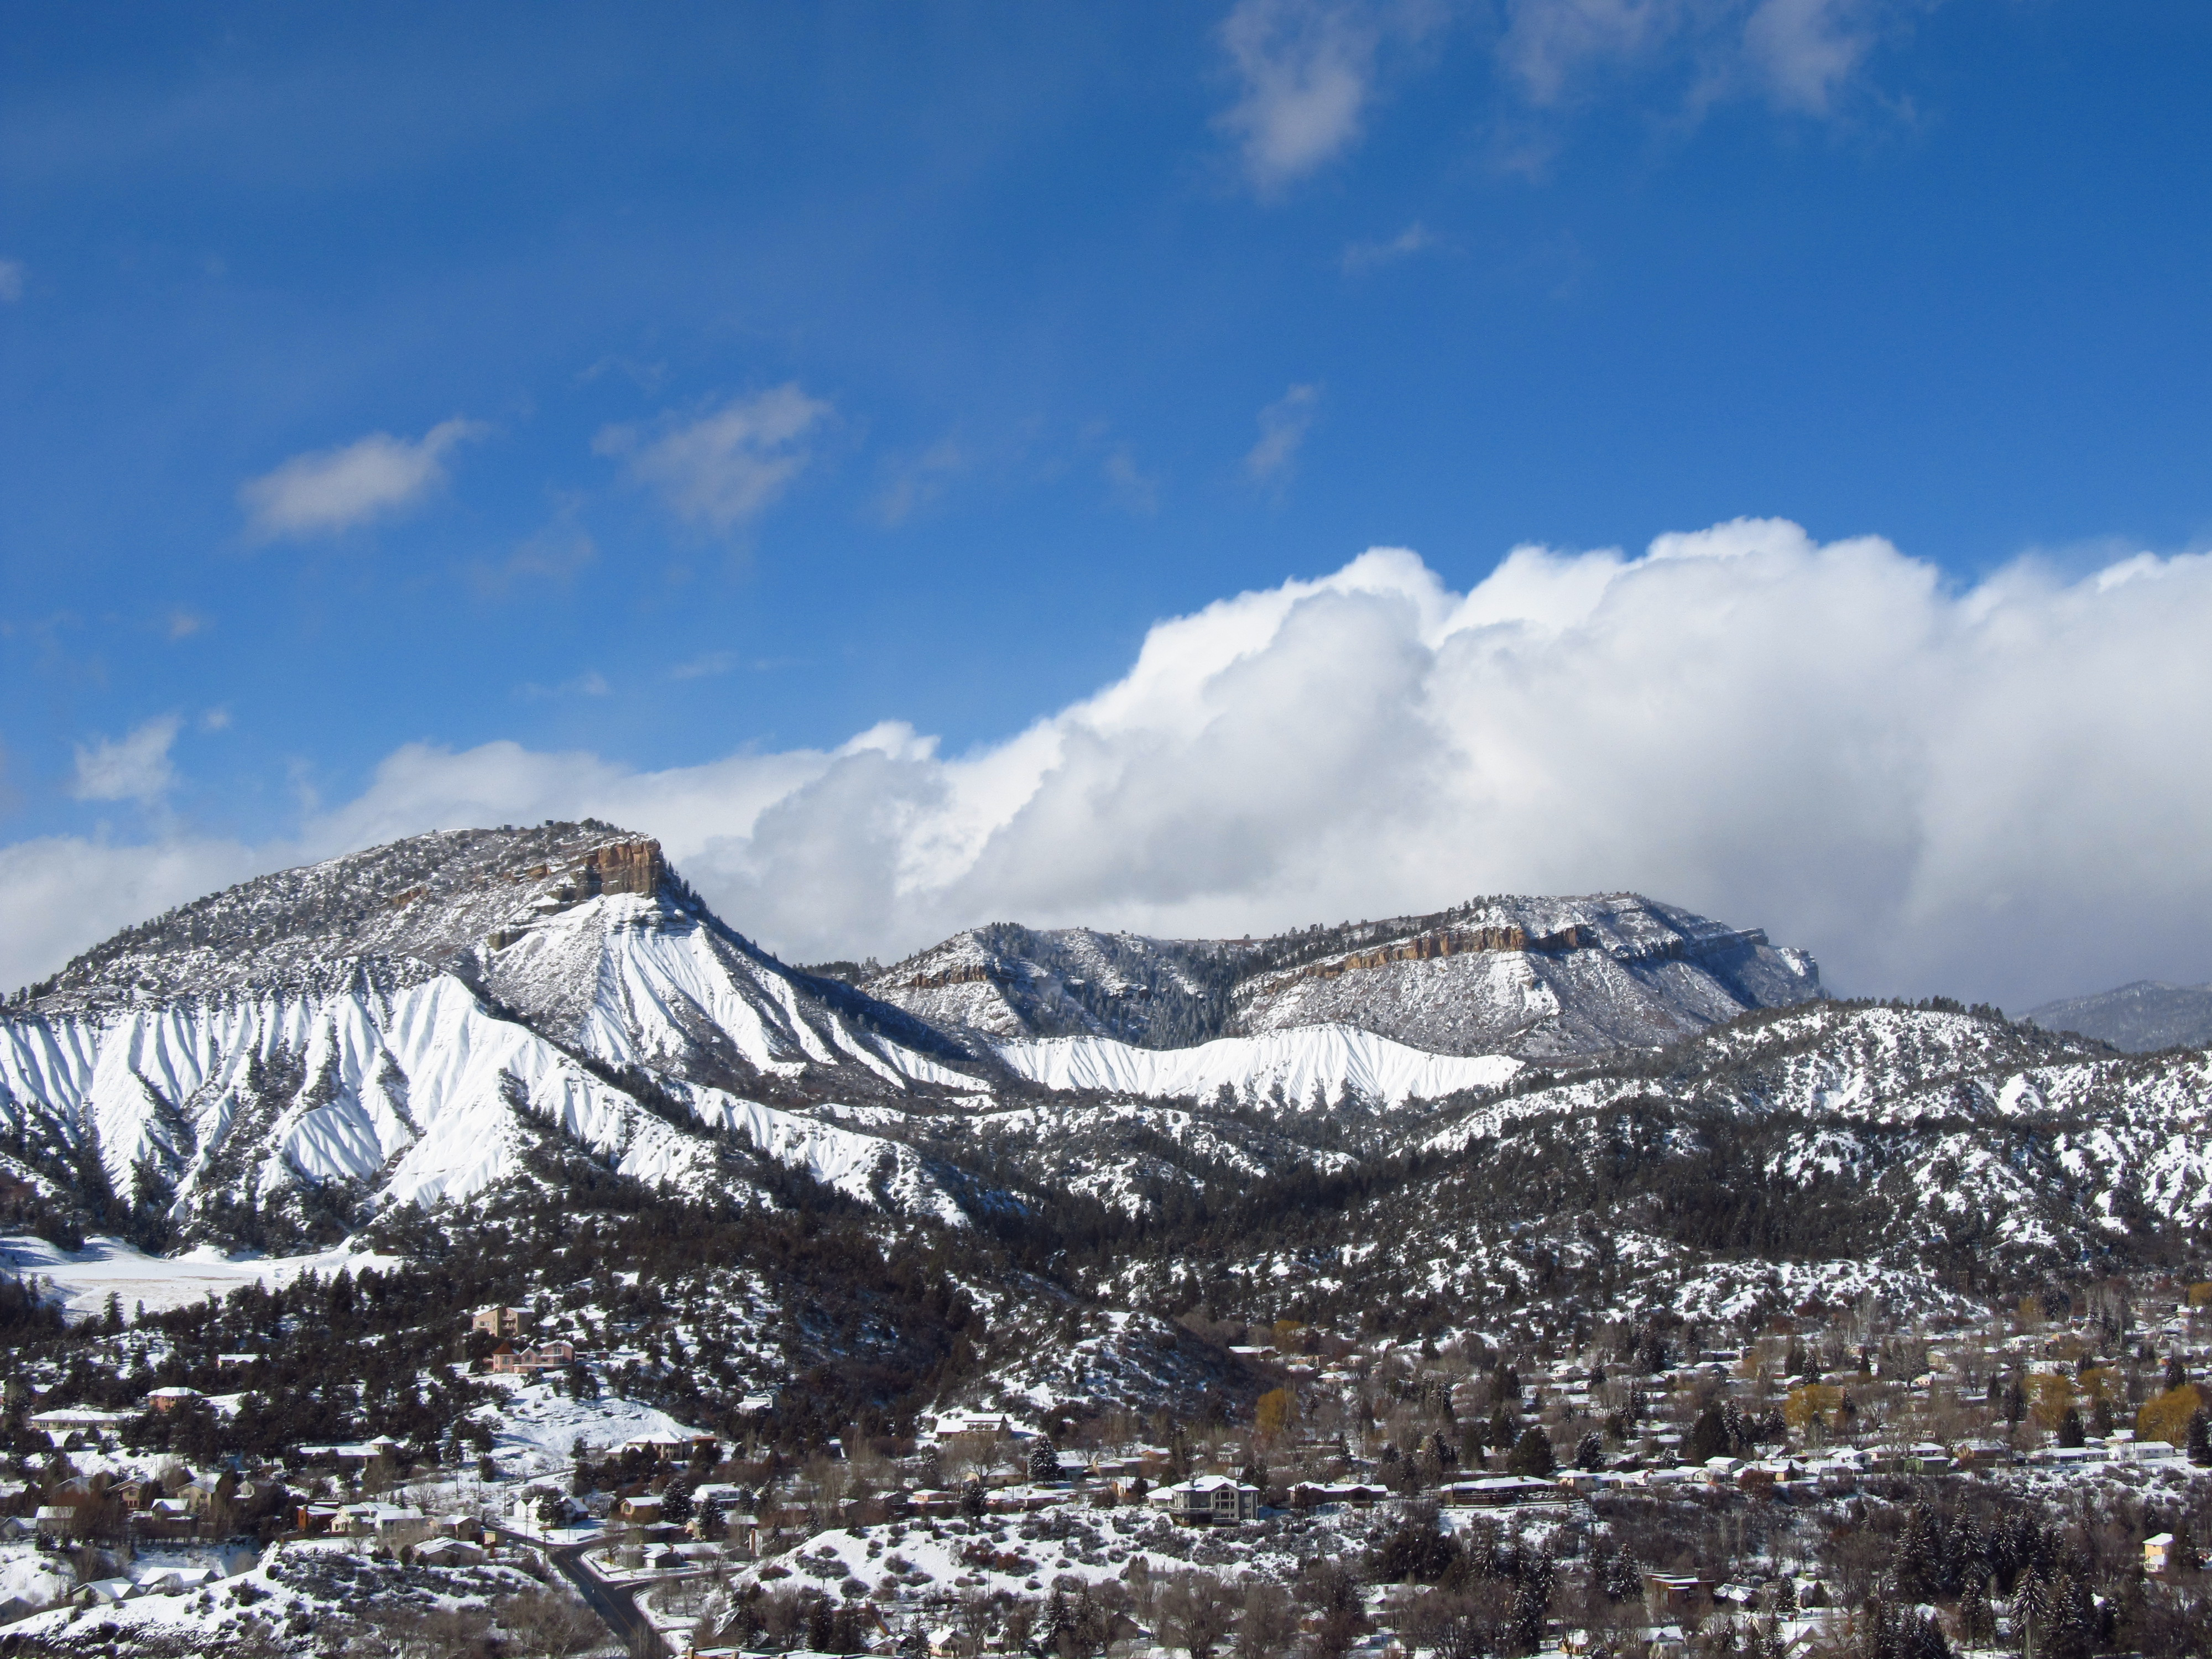 Fresh Snow Fall Blankets Durango, Colorado